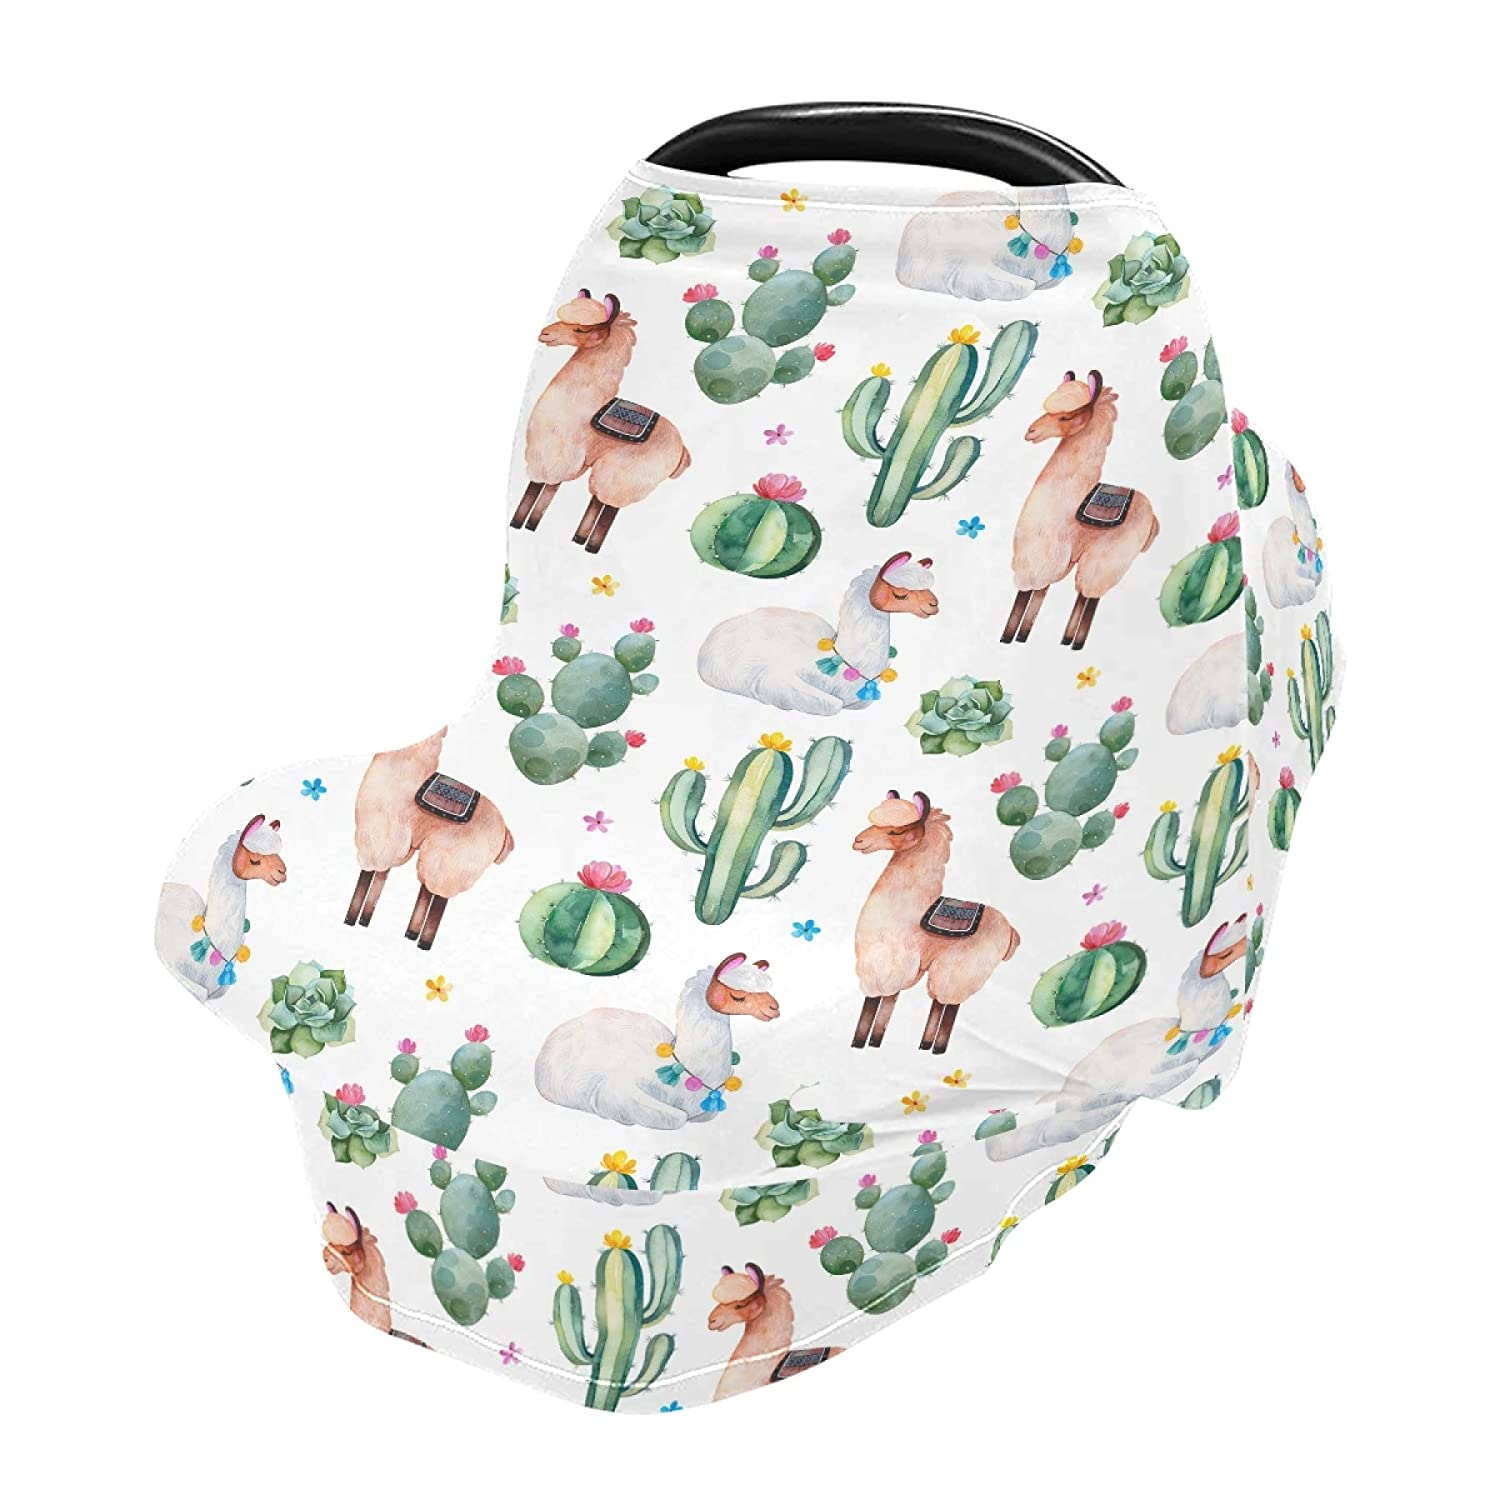 Baby Car Seat Covers for Newborns - Stretch 360 Coverage Infant Carseats Covers Nursing Poncho Breastfeeding Scarf Stroller Canopy Green Watercolor Cactus and Cute Llama